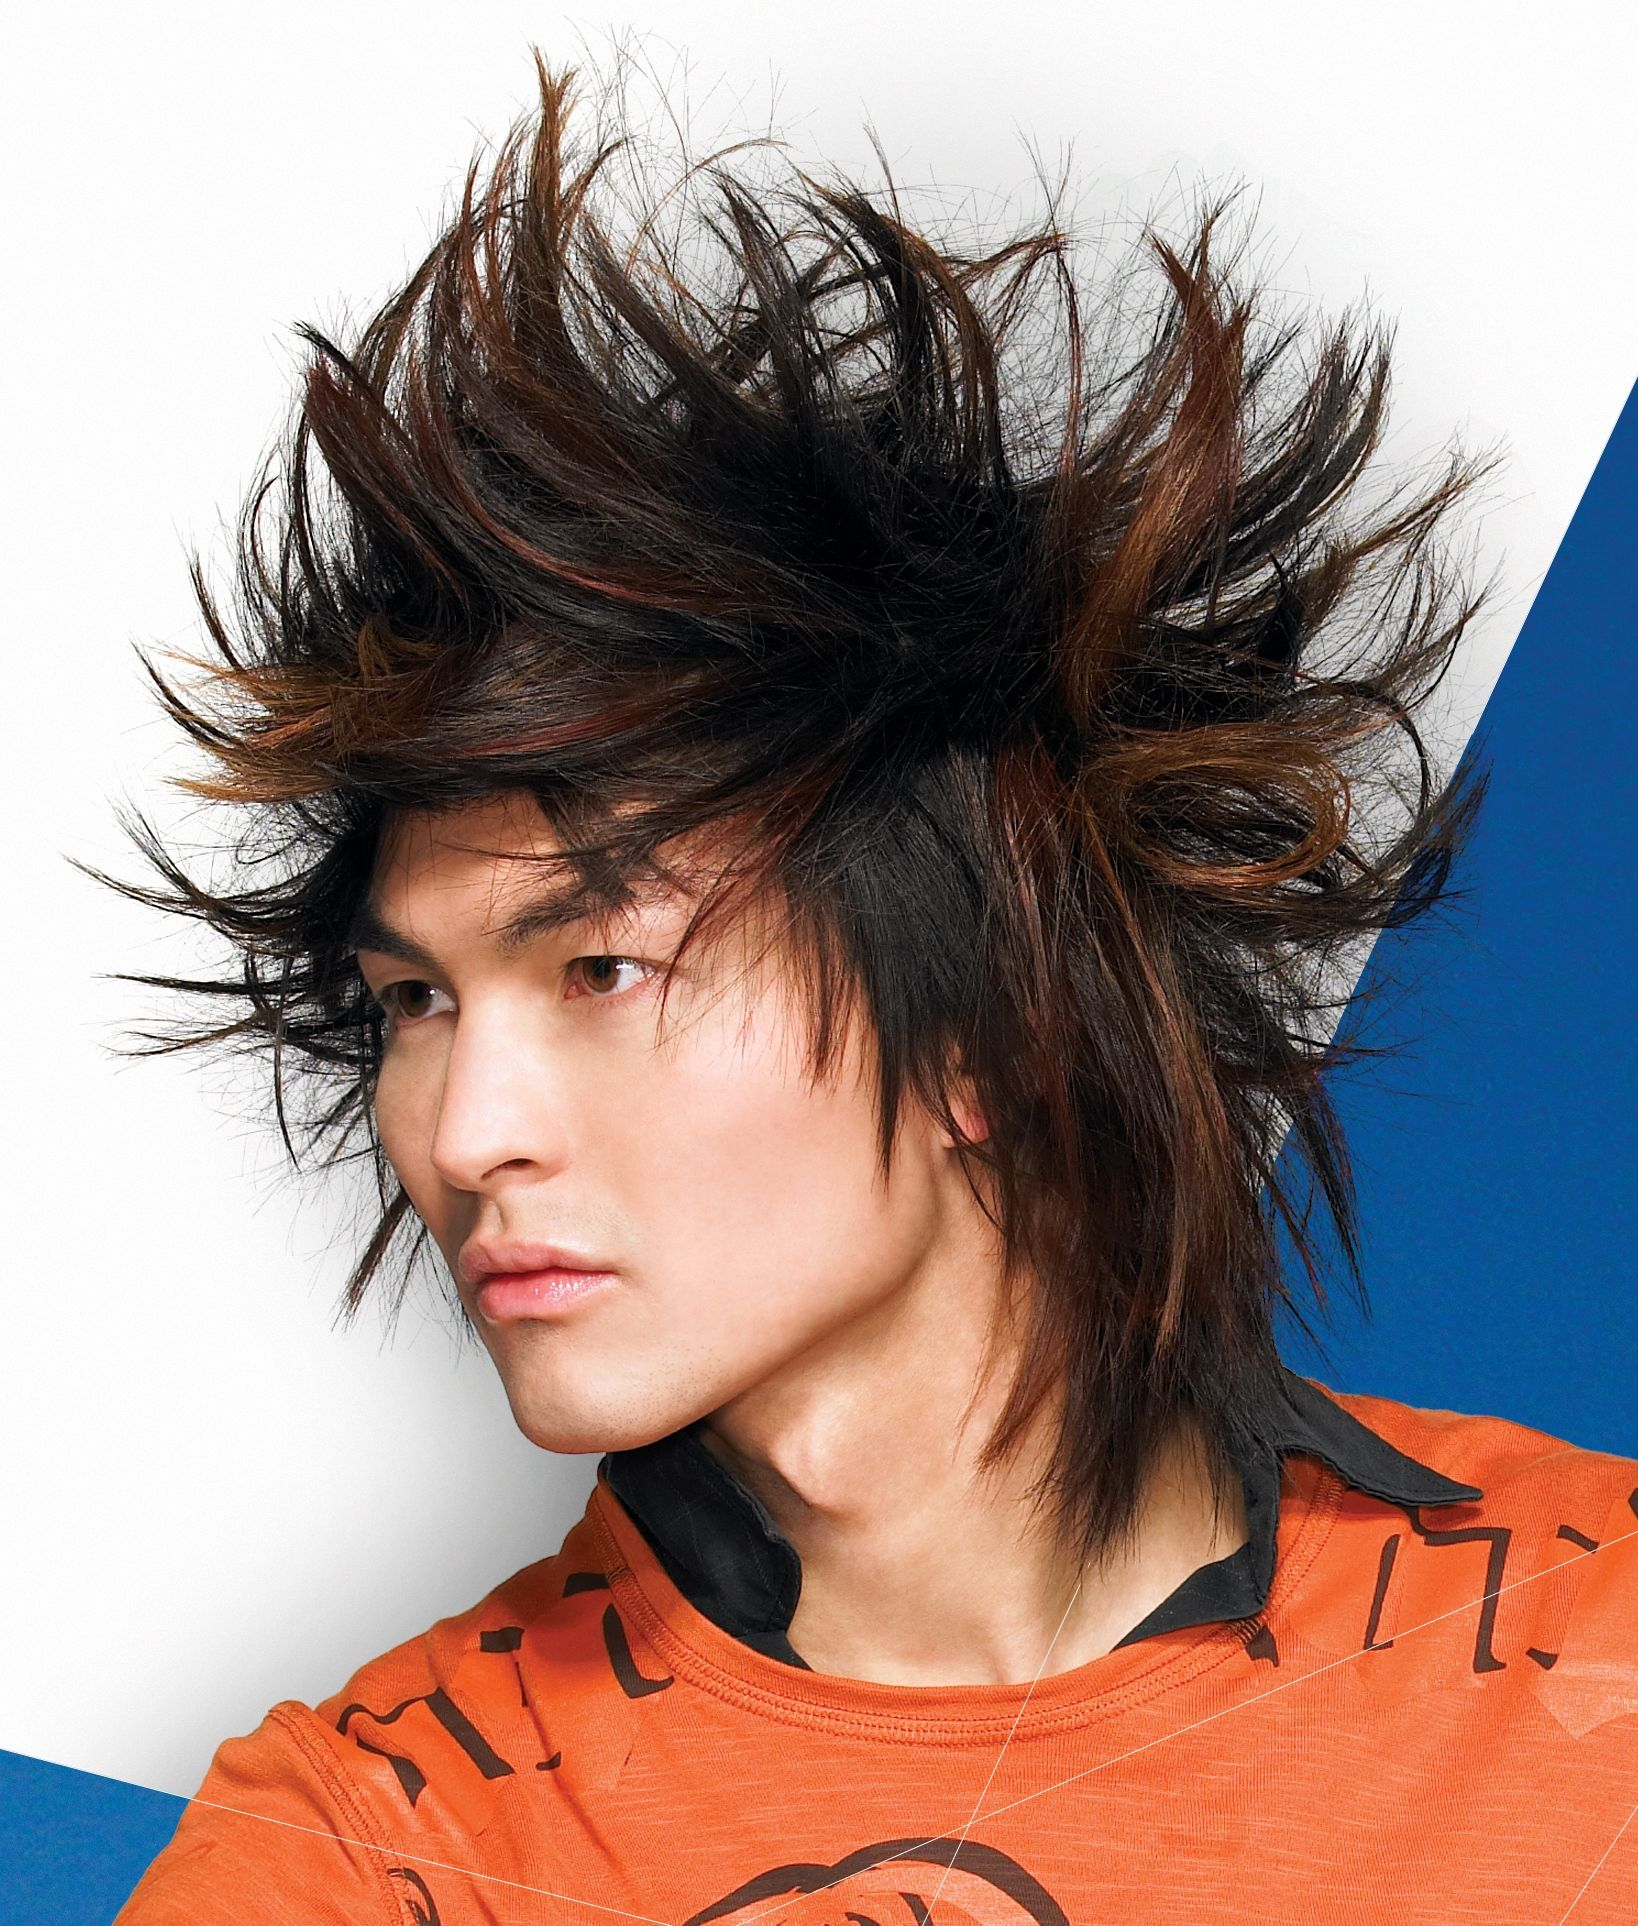 cool hairstyles - 0   cool hairstyles   Pinterest